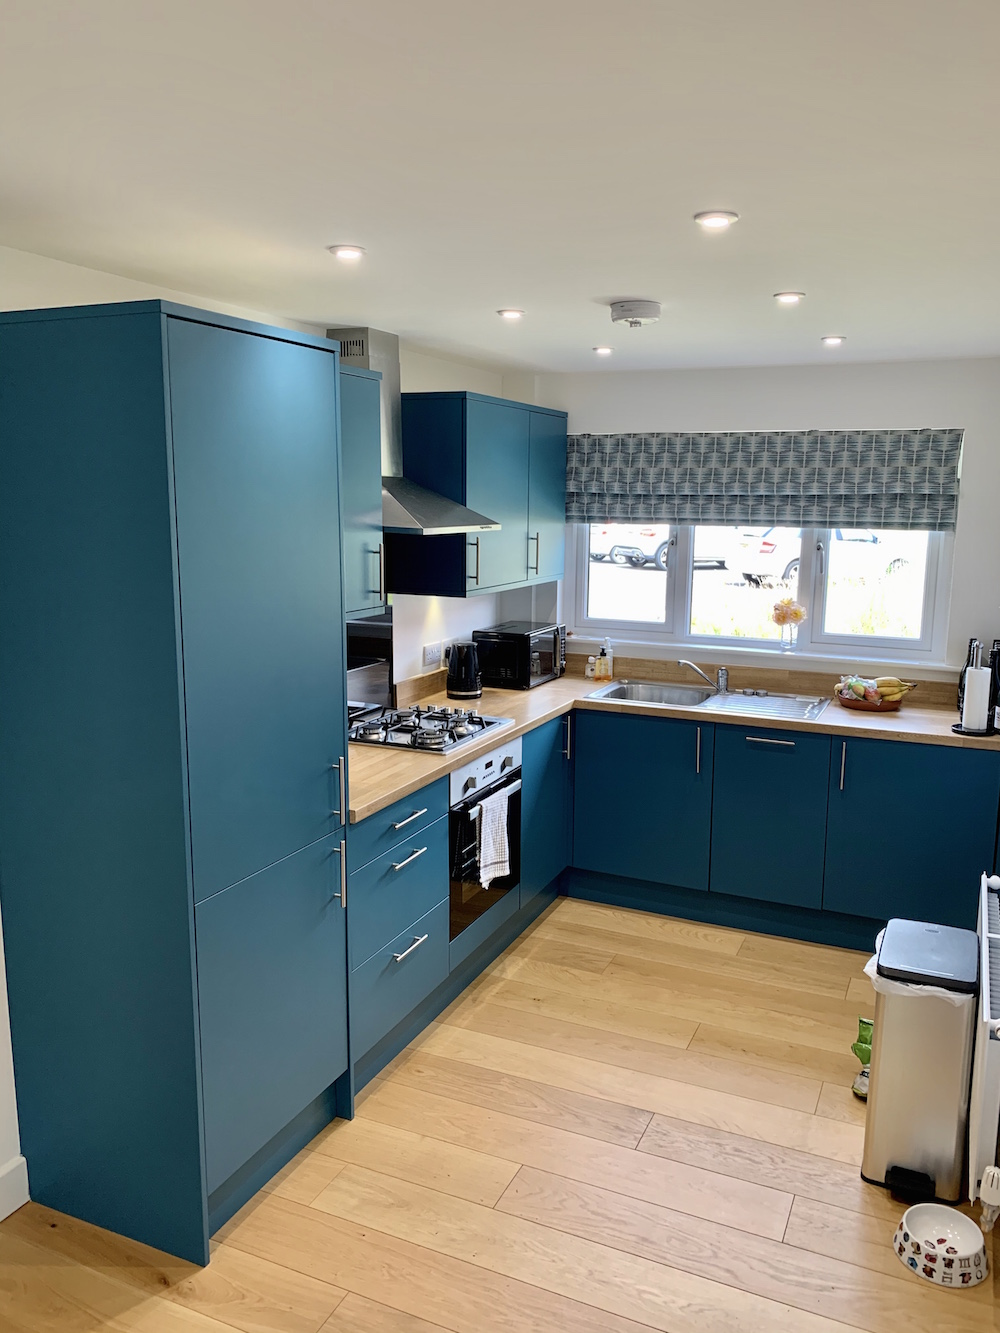 Mrs B's Teal painted kitchen